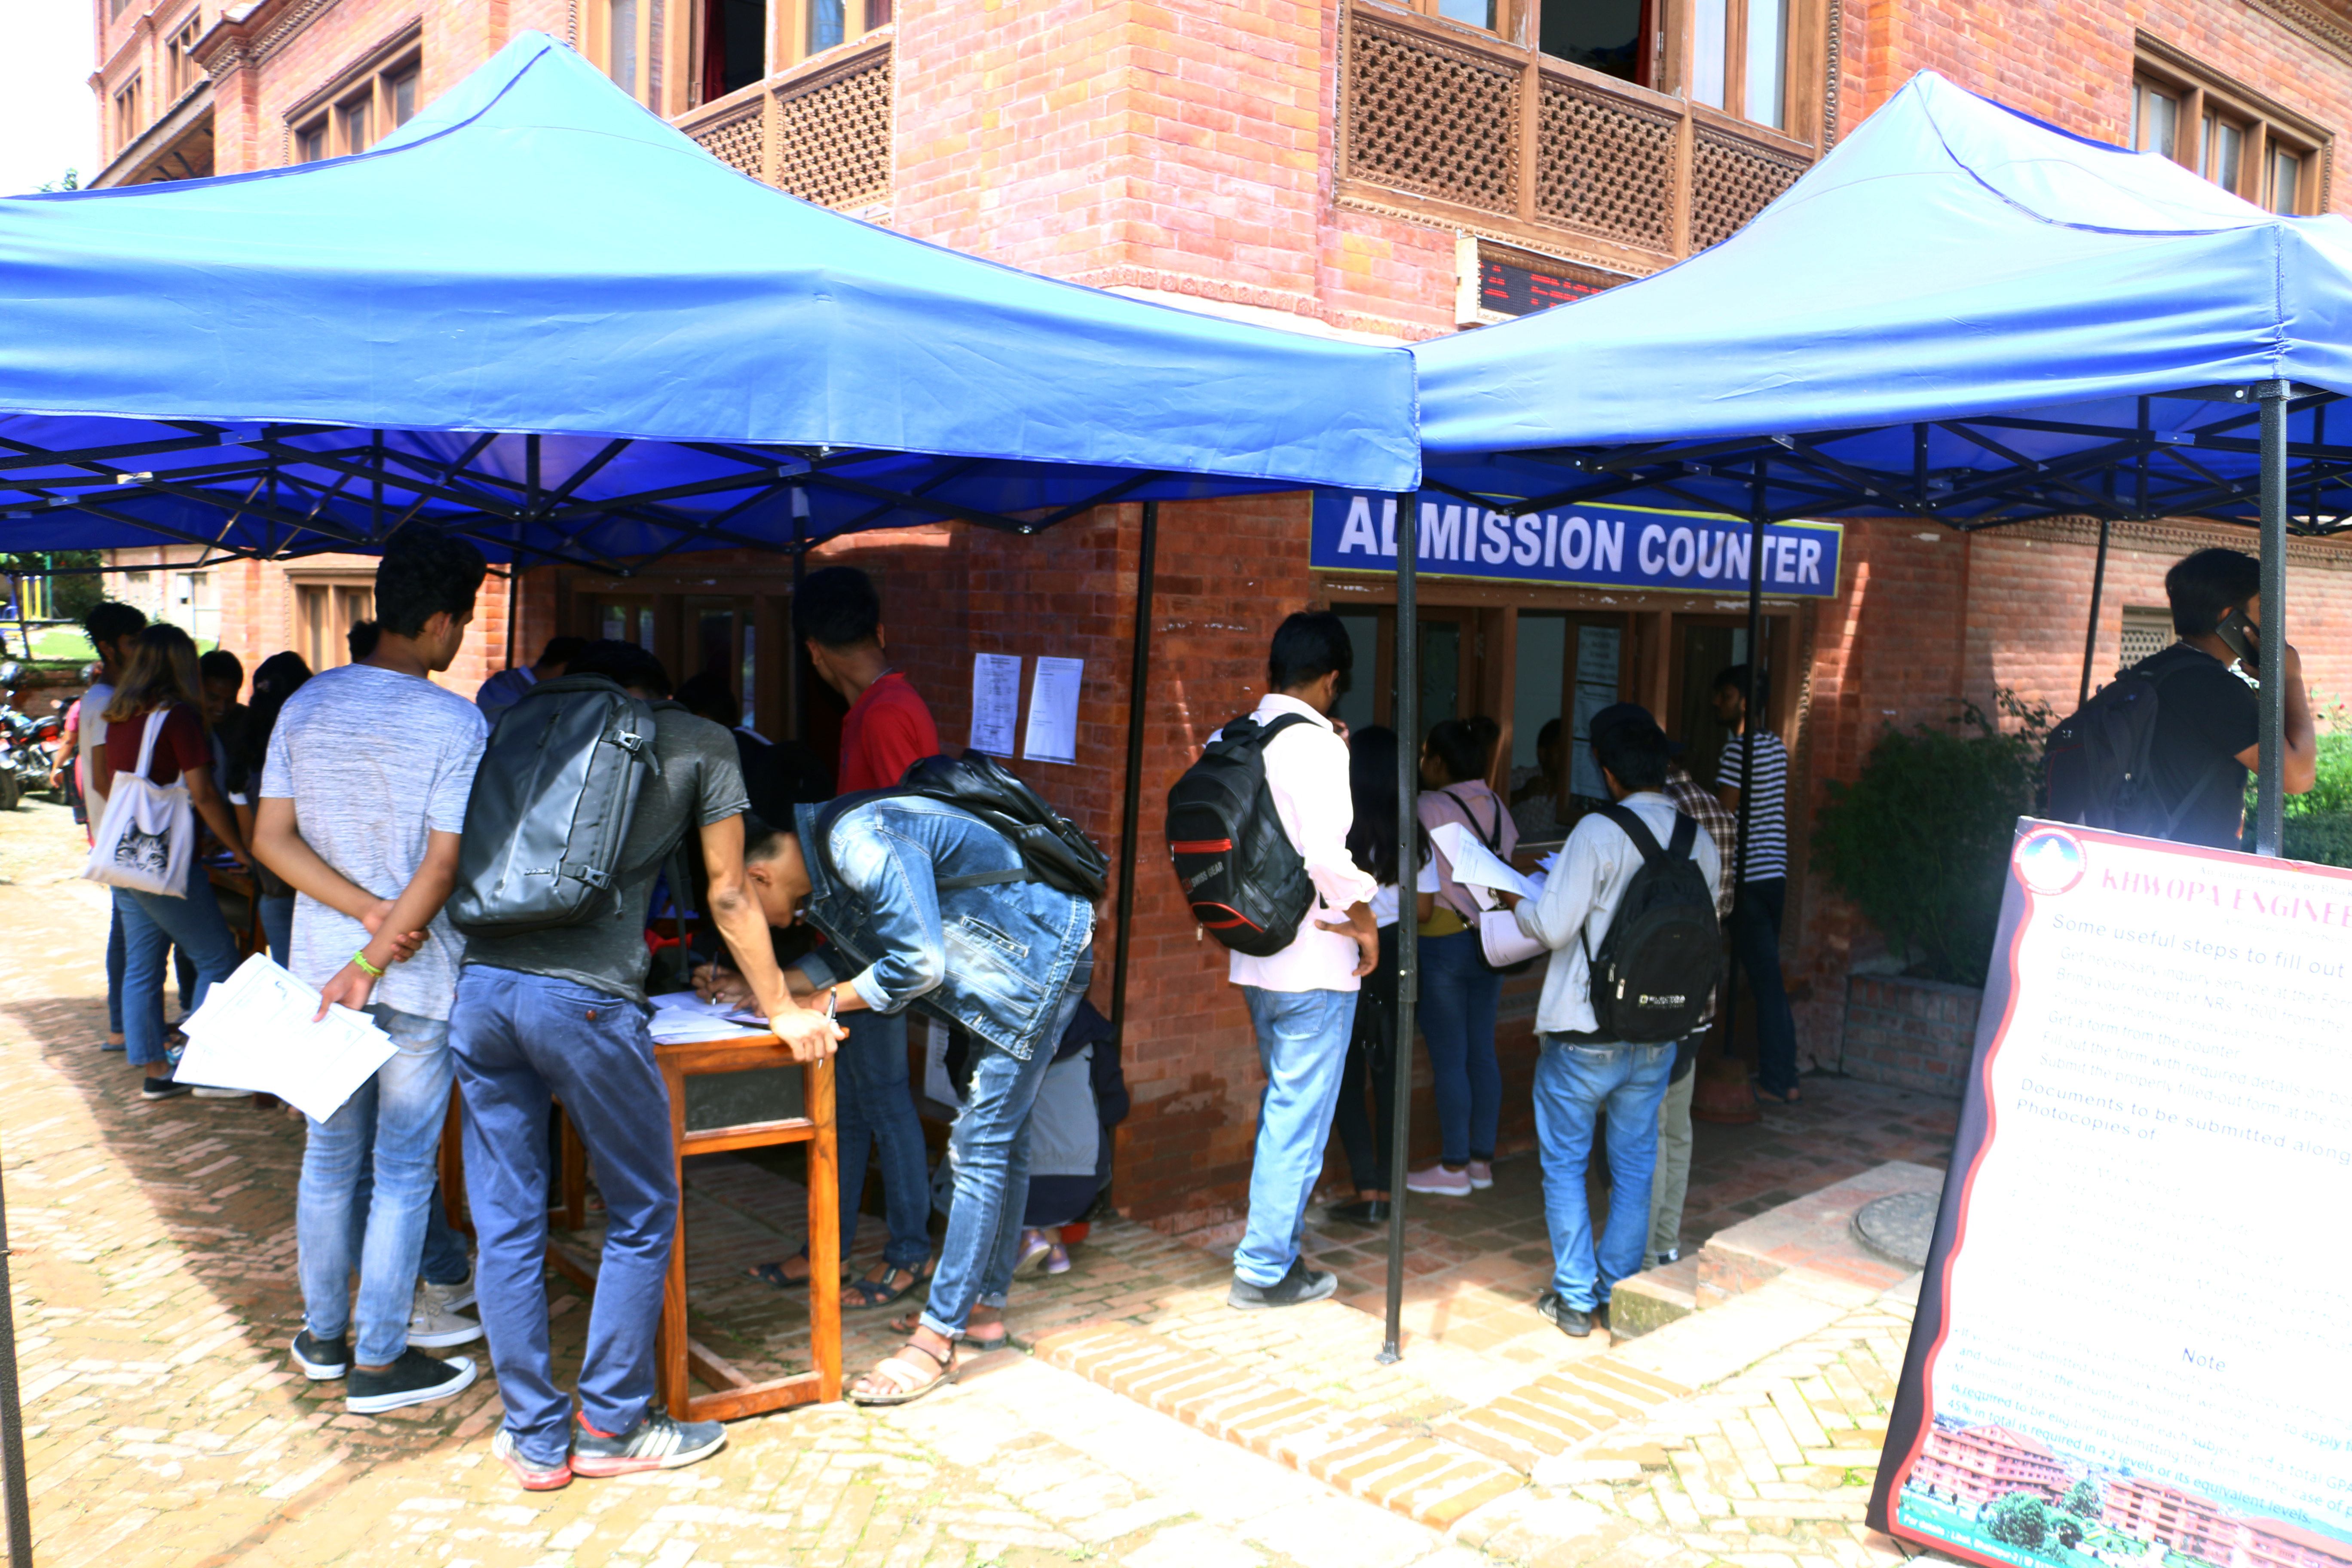 Admission counter-2076